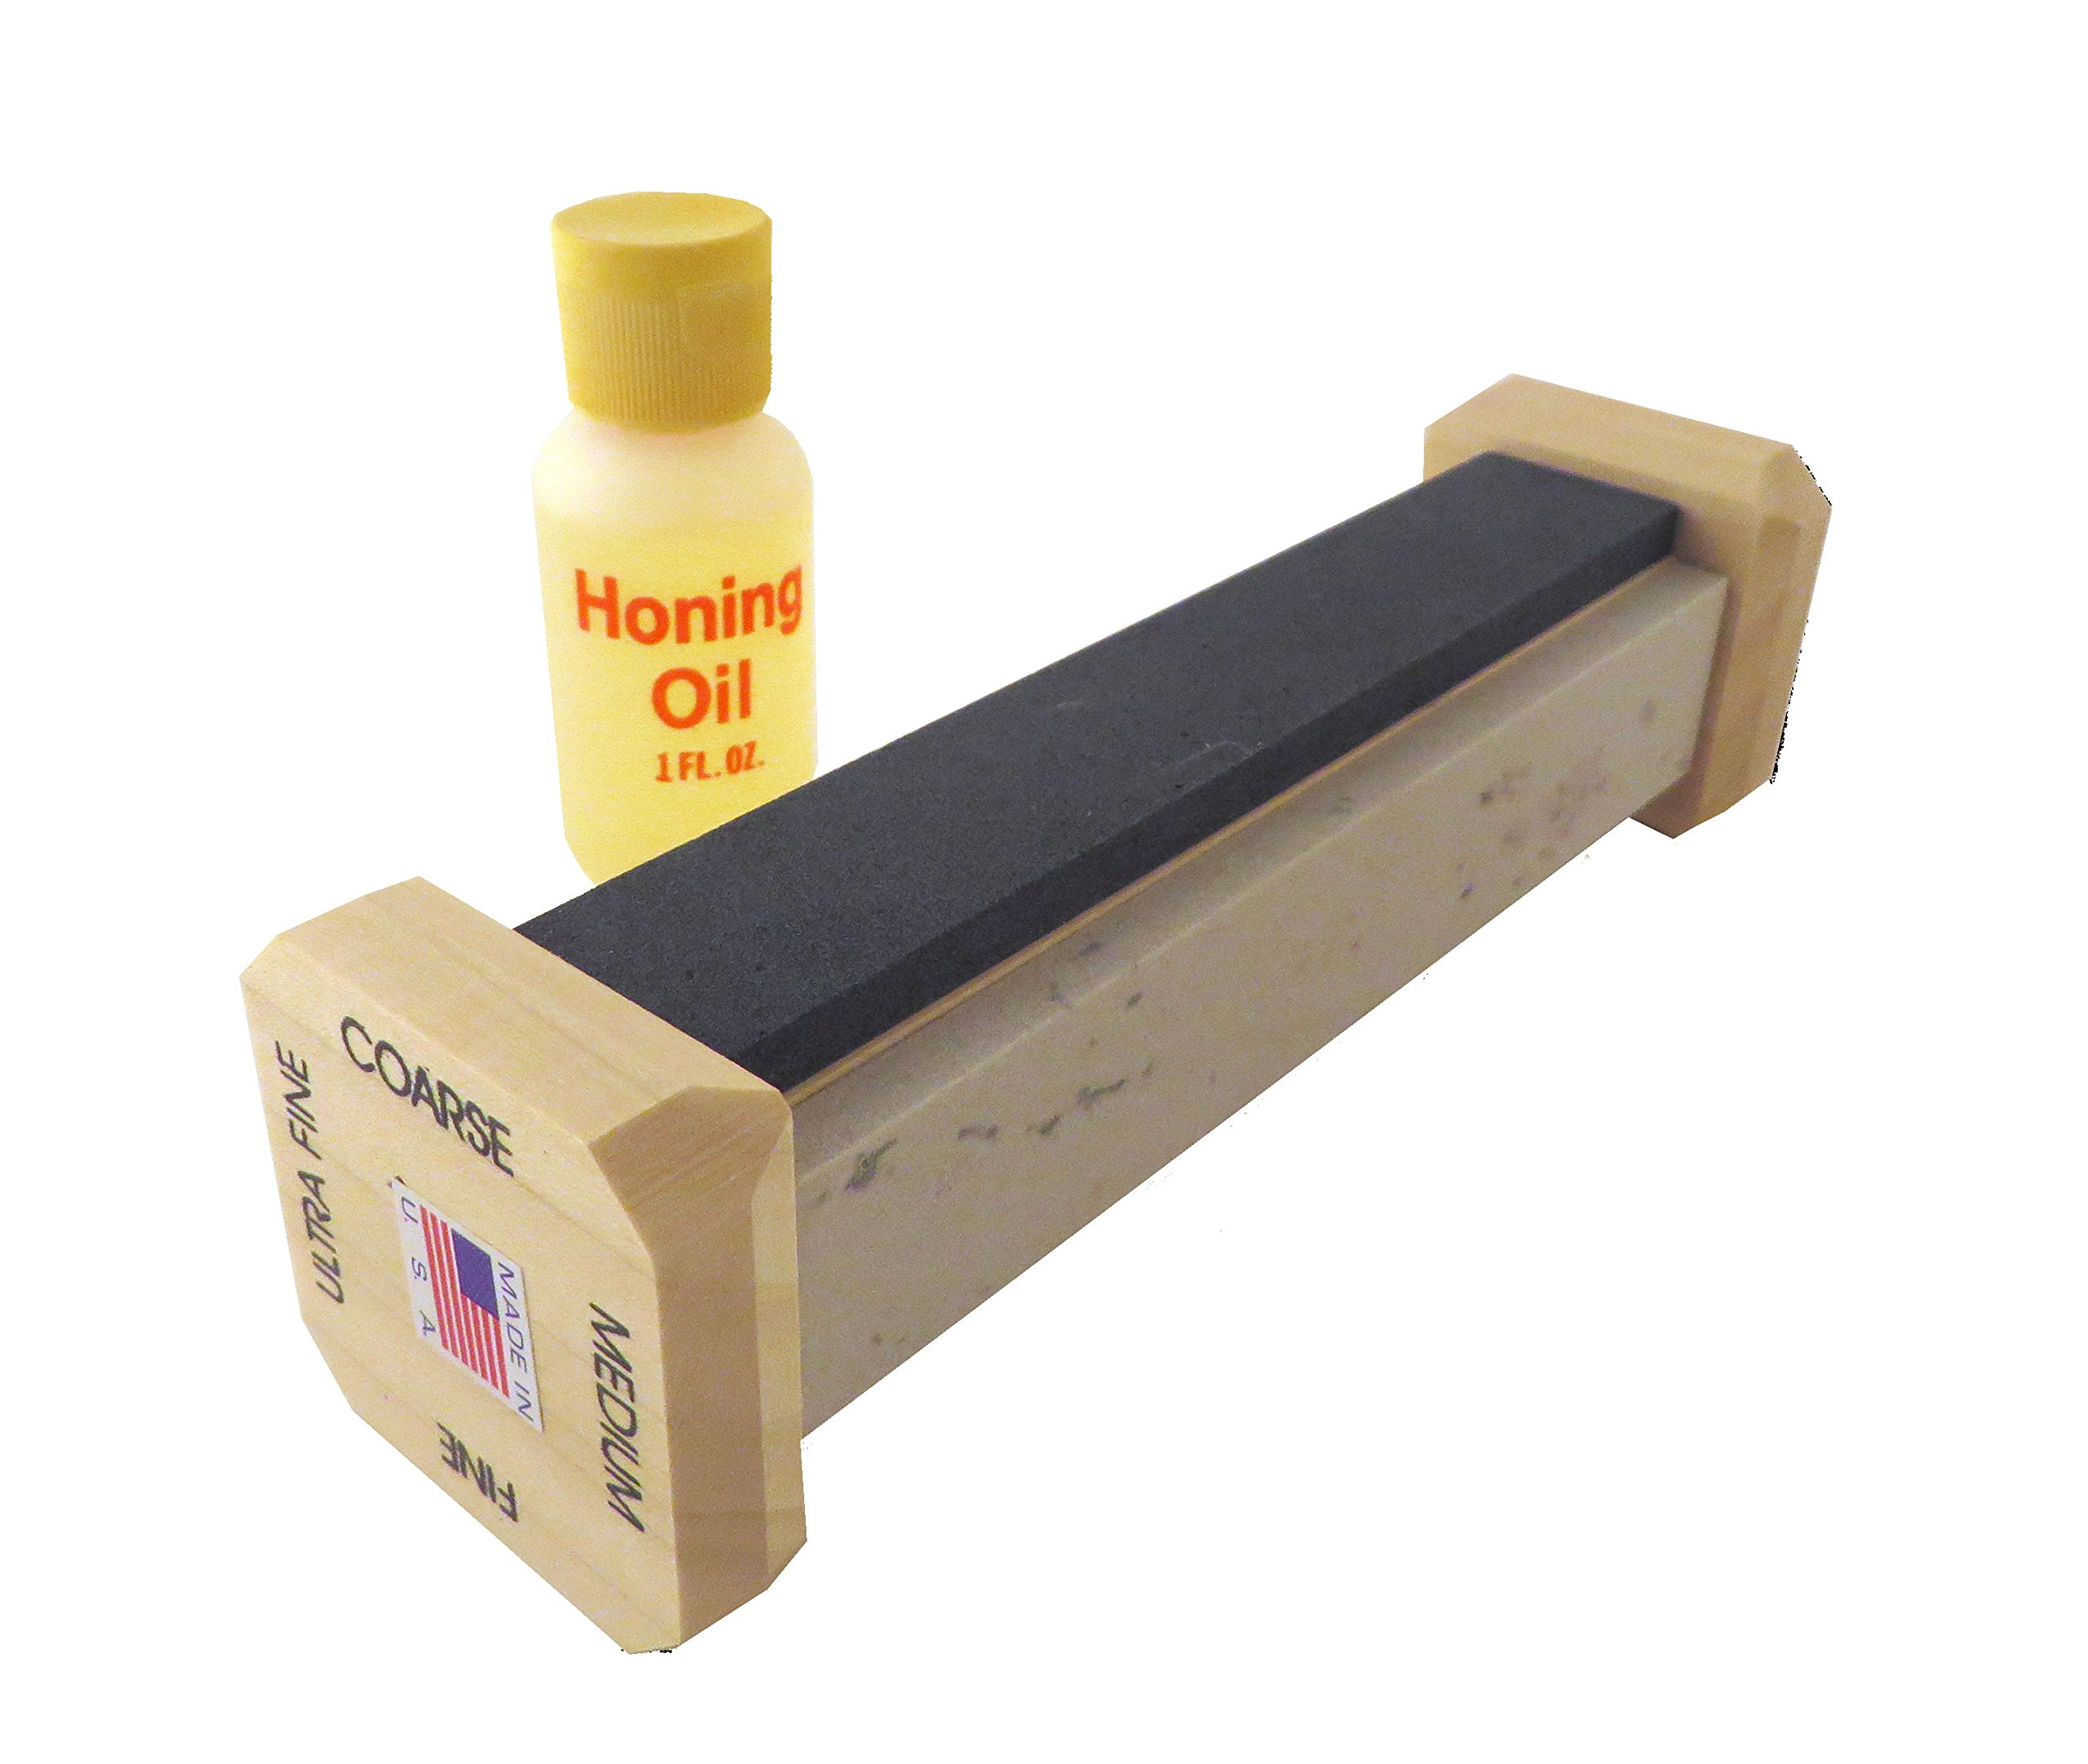 "Genuine 4 Stone Arkansas Full Size Ez Hone Whetstone Knife Sharpening System with Silicon Carbide (Coarse), Soft (Medium), Hard (Fine) and True Hard (Extra Fine) Stones 6"" X 1"" X 1/4"" EZH-64-O"